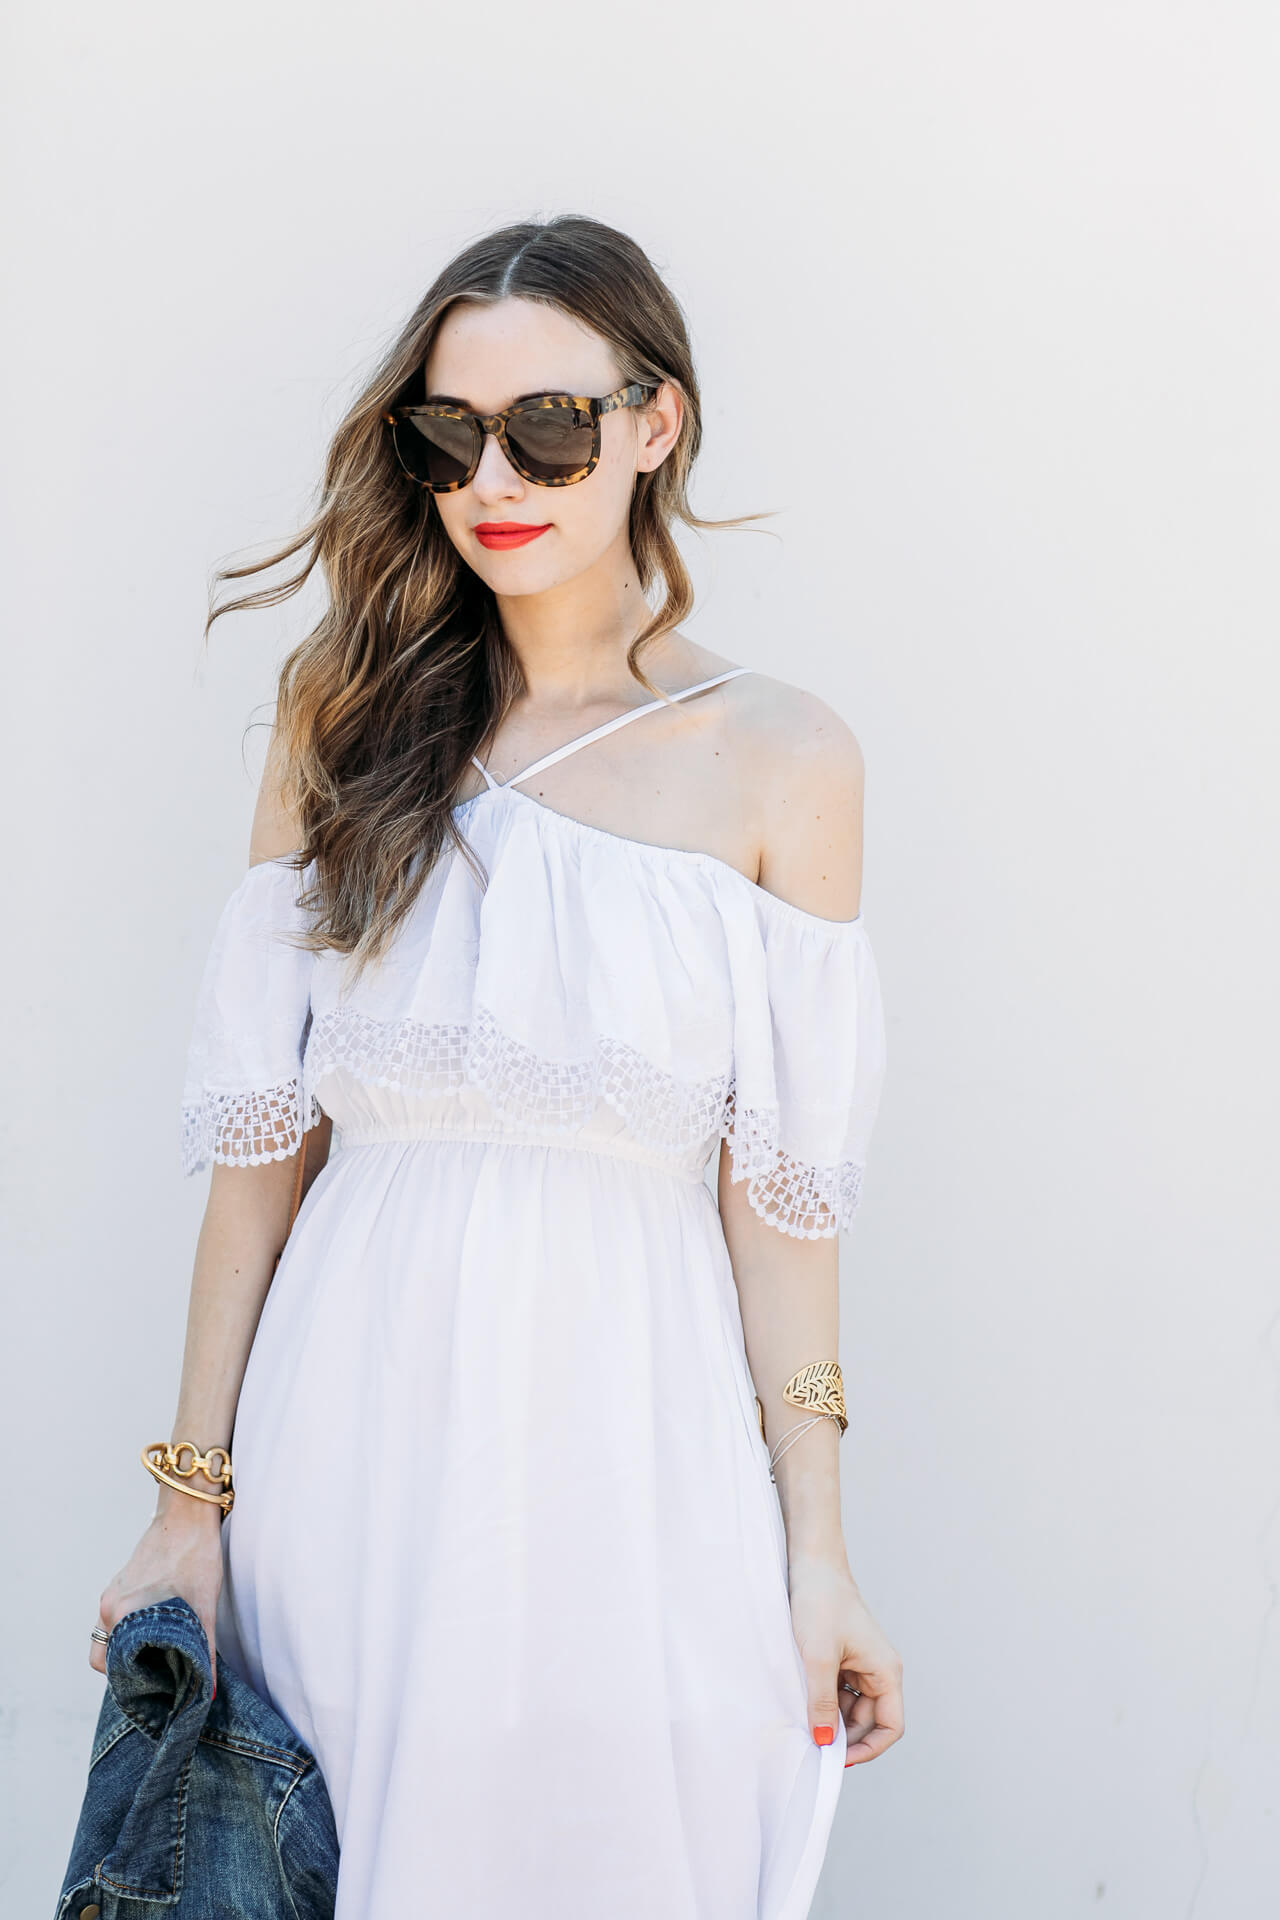 halter and off the shoulder dress combo that will look chic and stylish